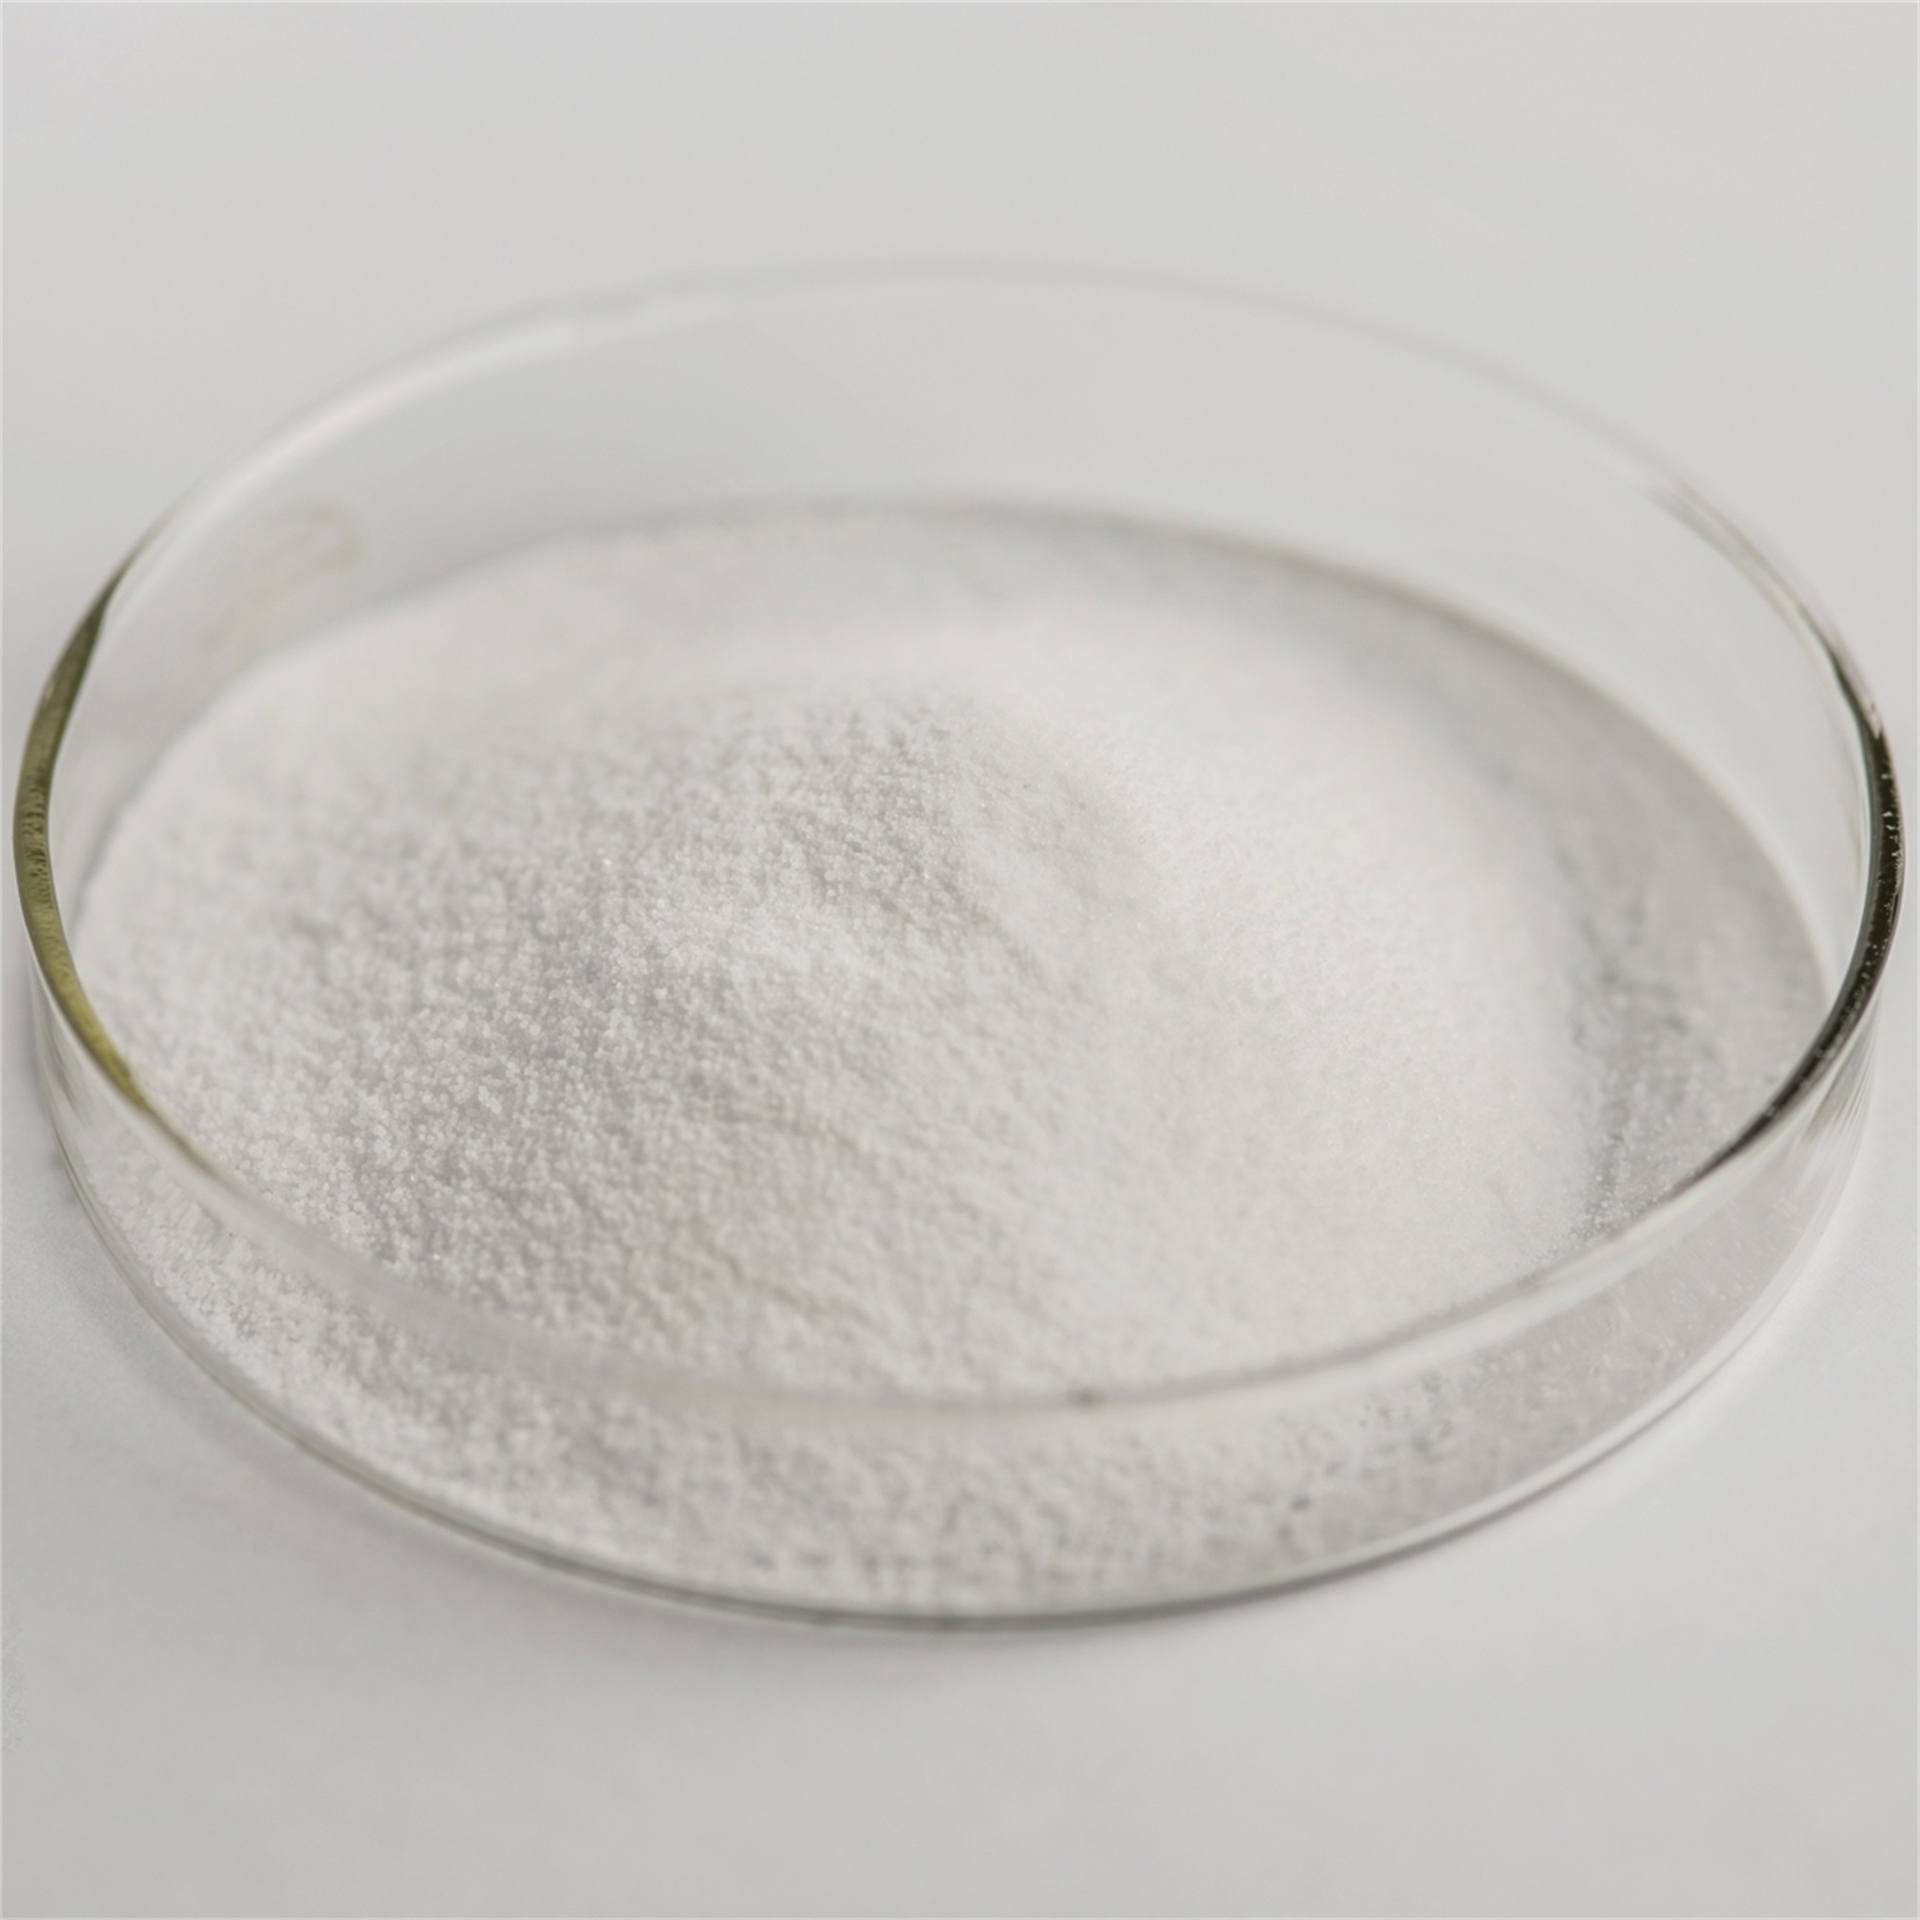 DL-Tartaric acid with best price(133-37-9)purity 99% white powder